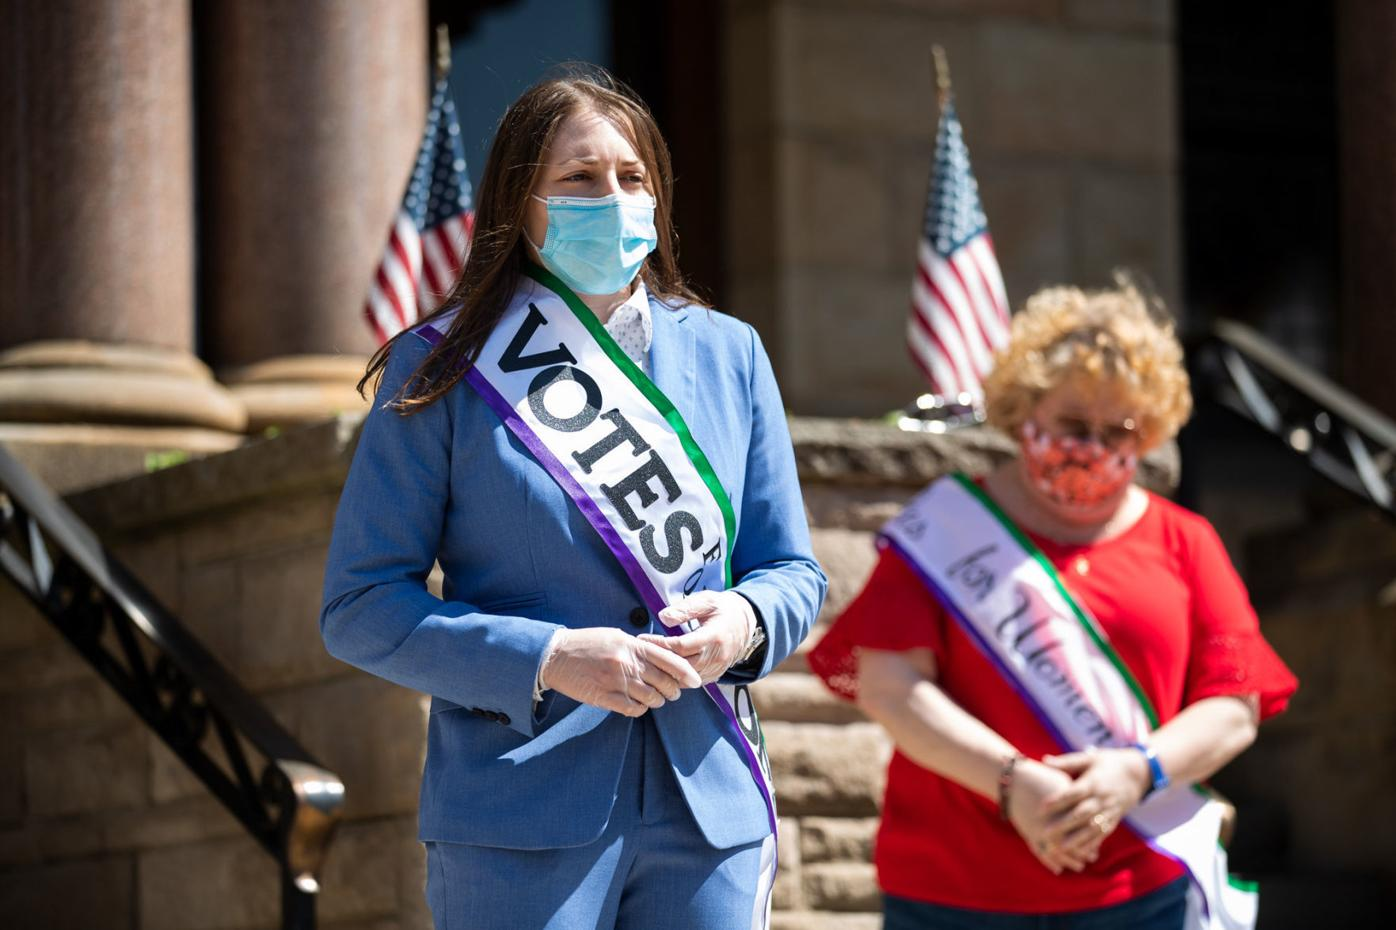 Road rally in Lackawanna County celebrates 100th anniversary of women's right to vote